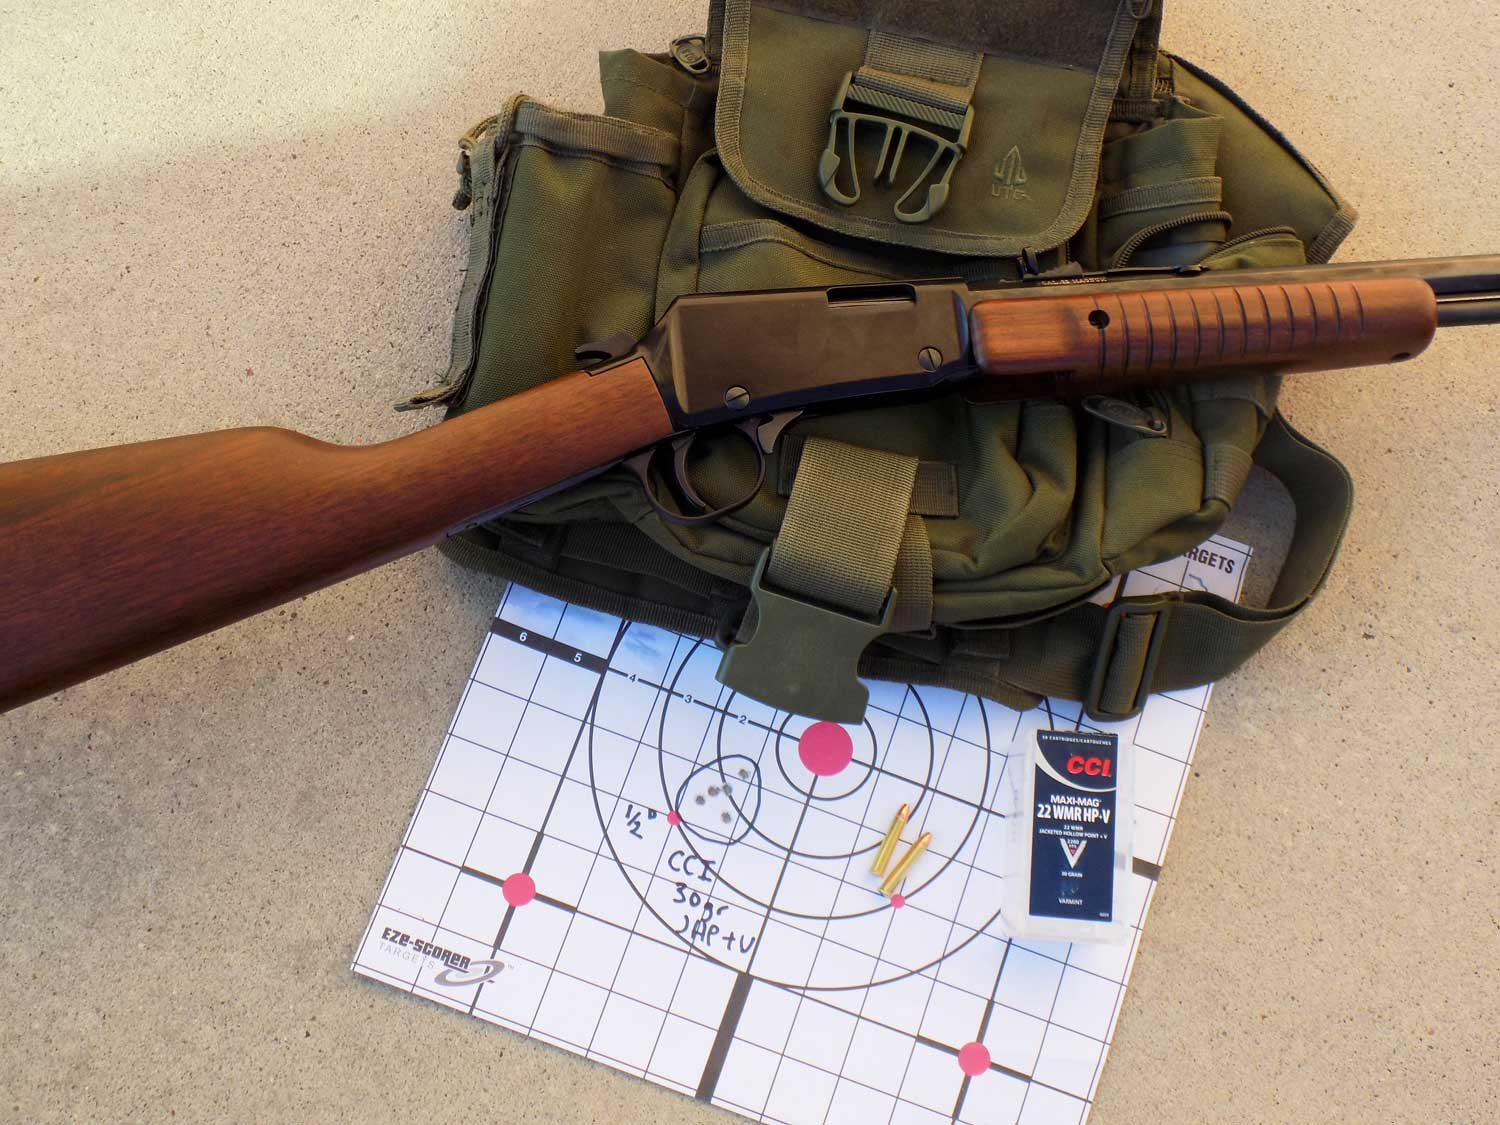 Henry Pump Octagon on OD green pack with paper target and CCI ammuniton